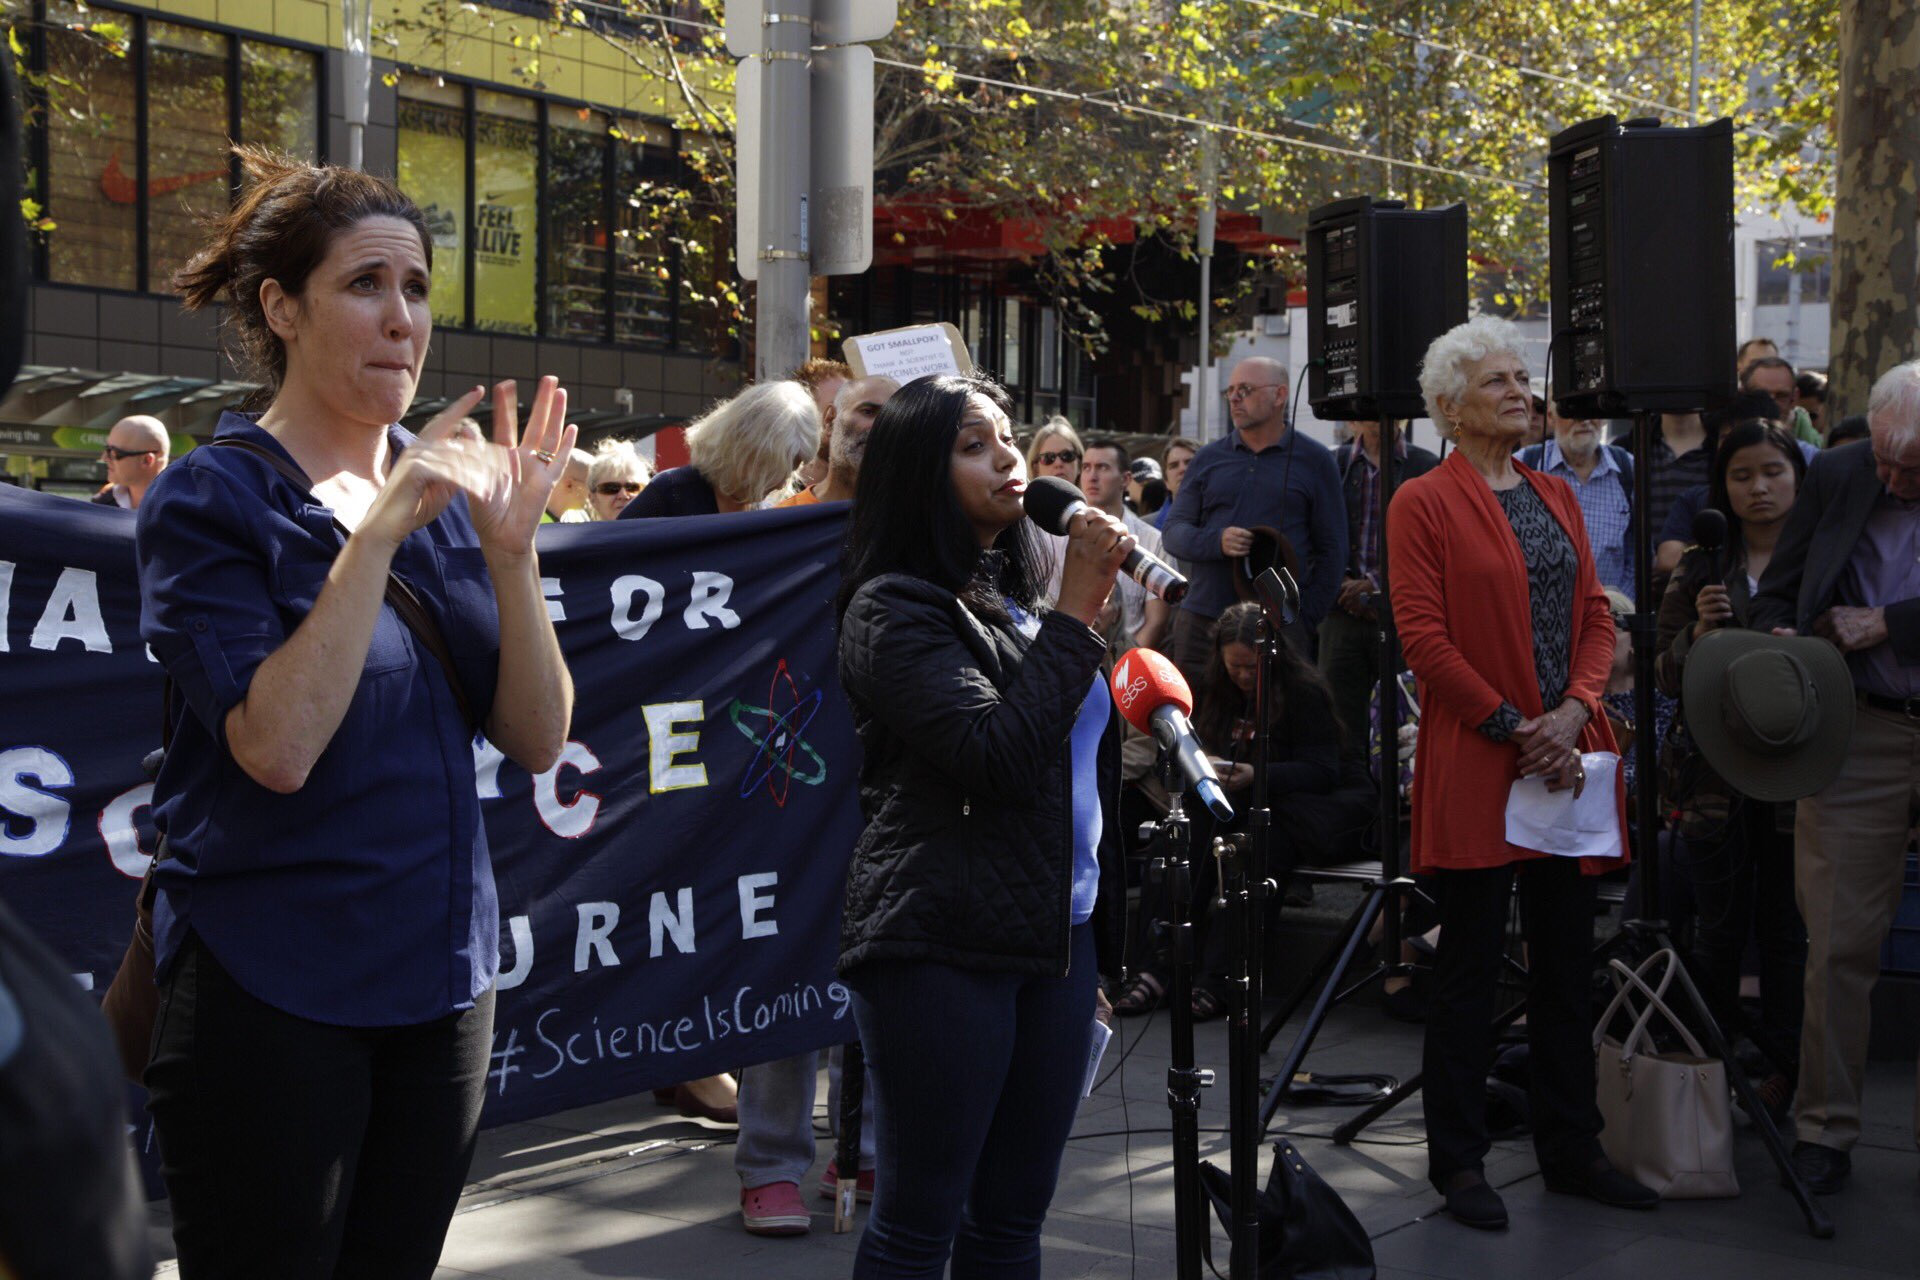 Upulie Divisekera talking about the importance of hearing from the diverse voices in science.   #marchforscience #marchforscienceau https://t.co/tpM0OyjF0A